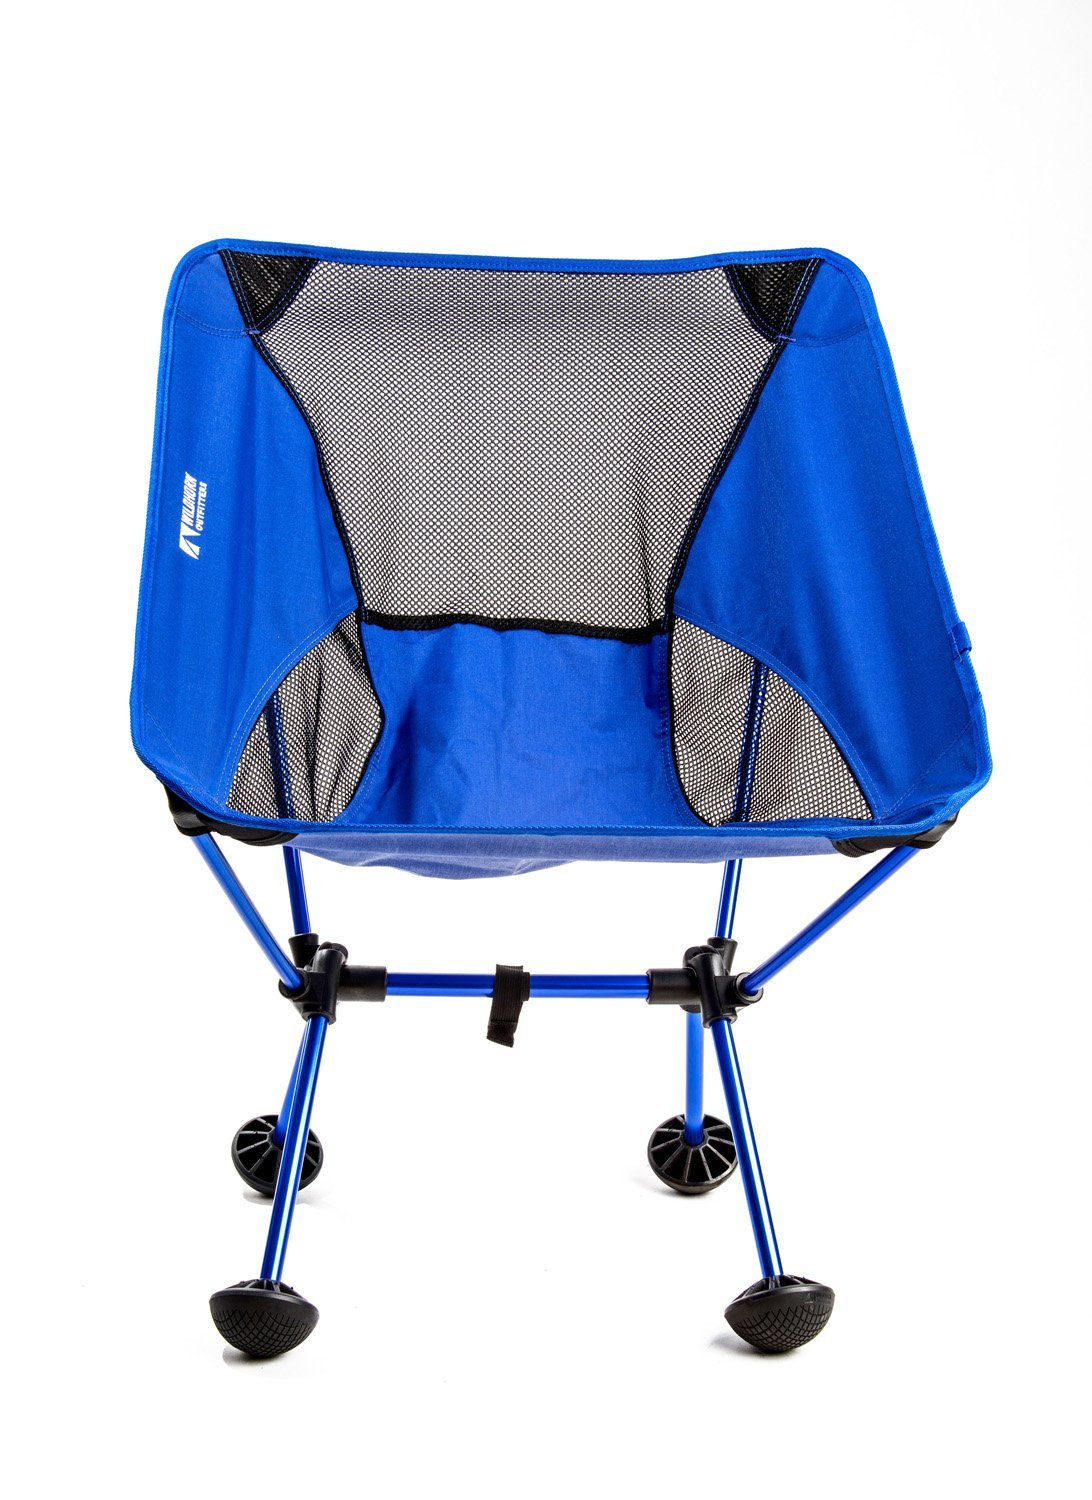 Terralite Portable Camp / Beach Chair